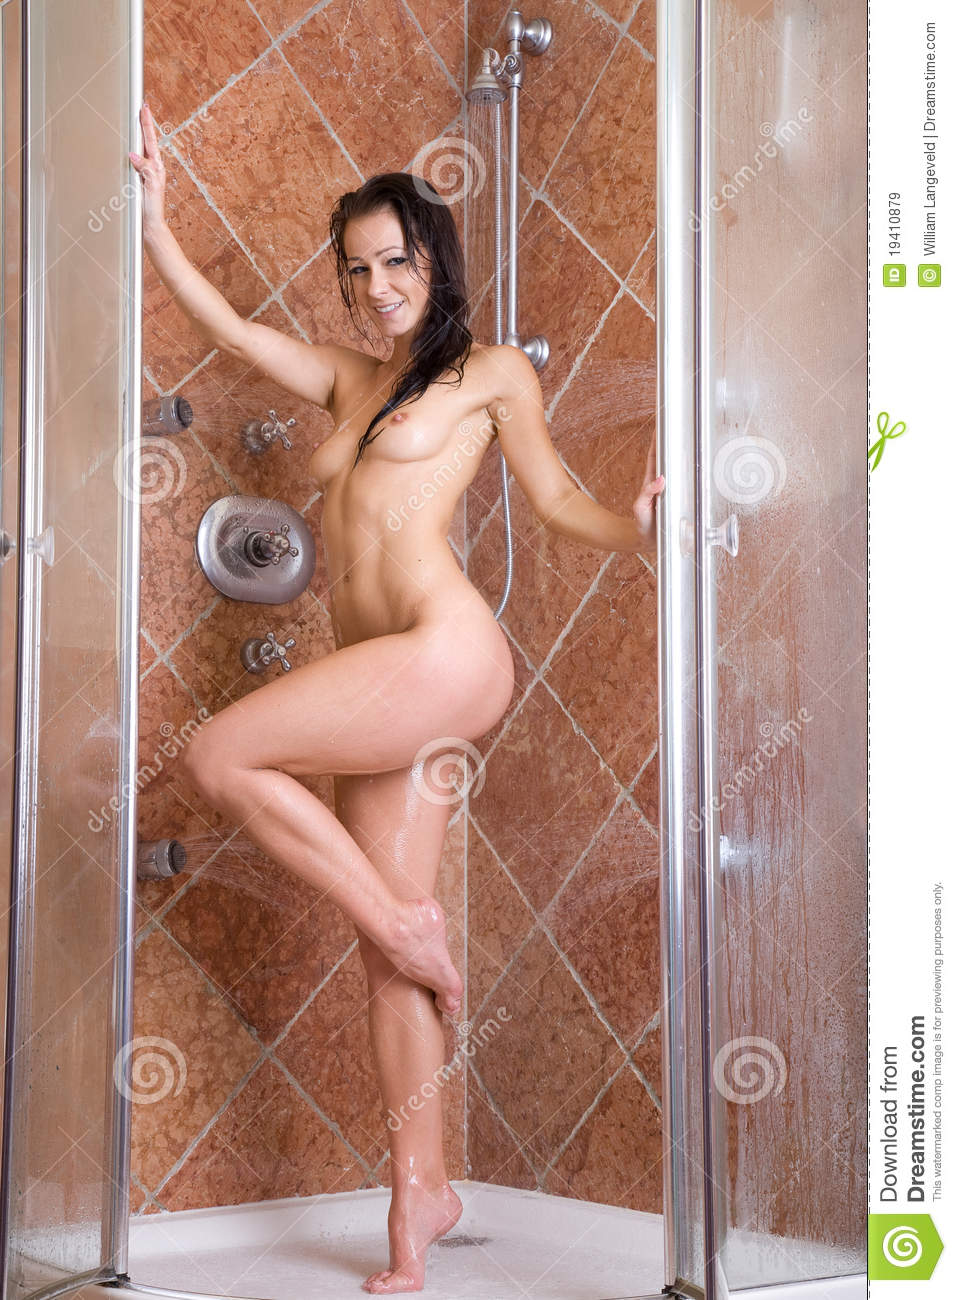 In hot naked shower chick